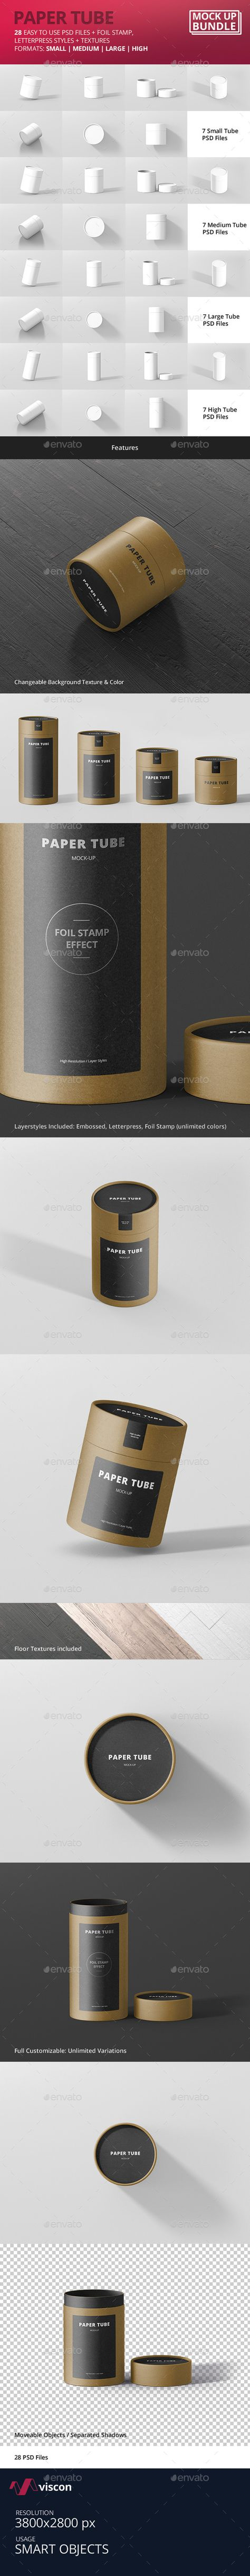 Download 35 The Best Product Package Mockups Ideas Mockup Packaging Mockup Packaging